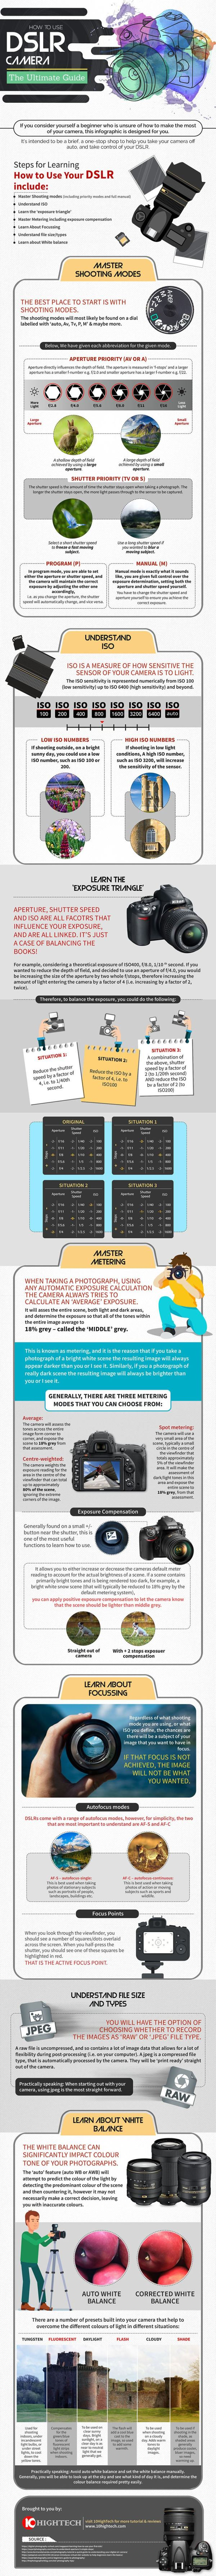 How-to-Use-DSLR-Camera-cheat-sheet-infographic-galleryr